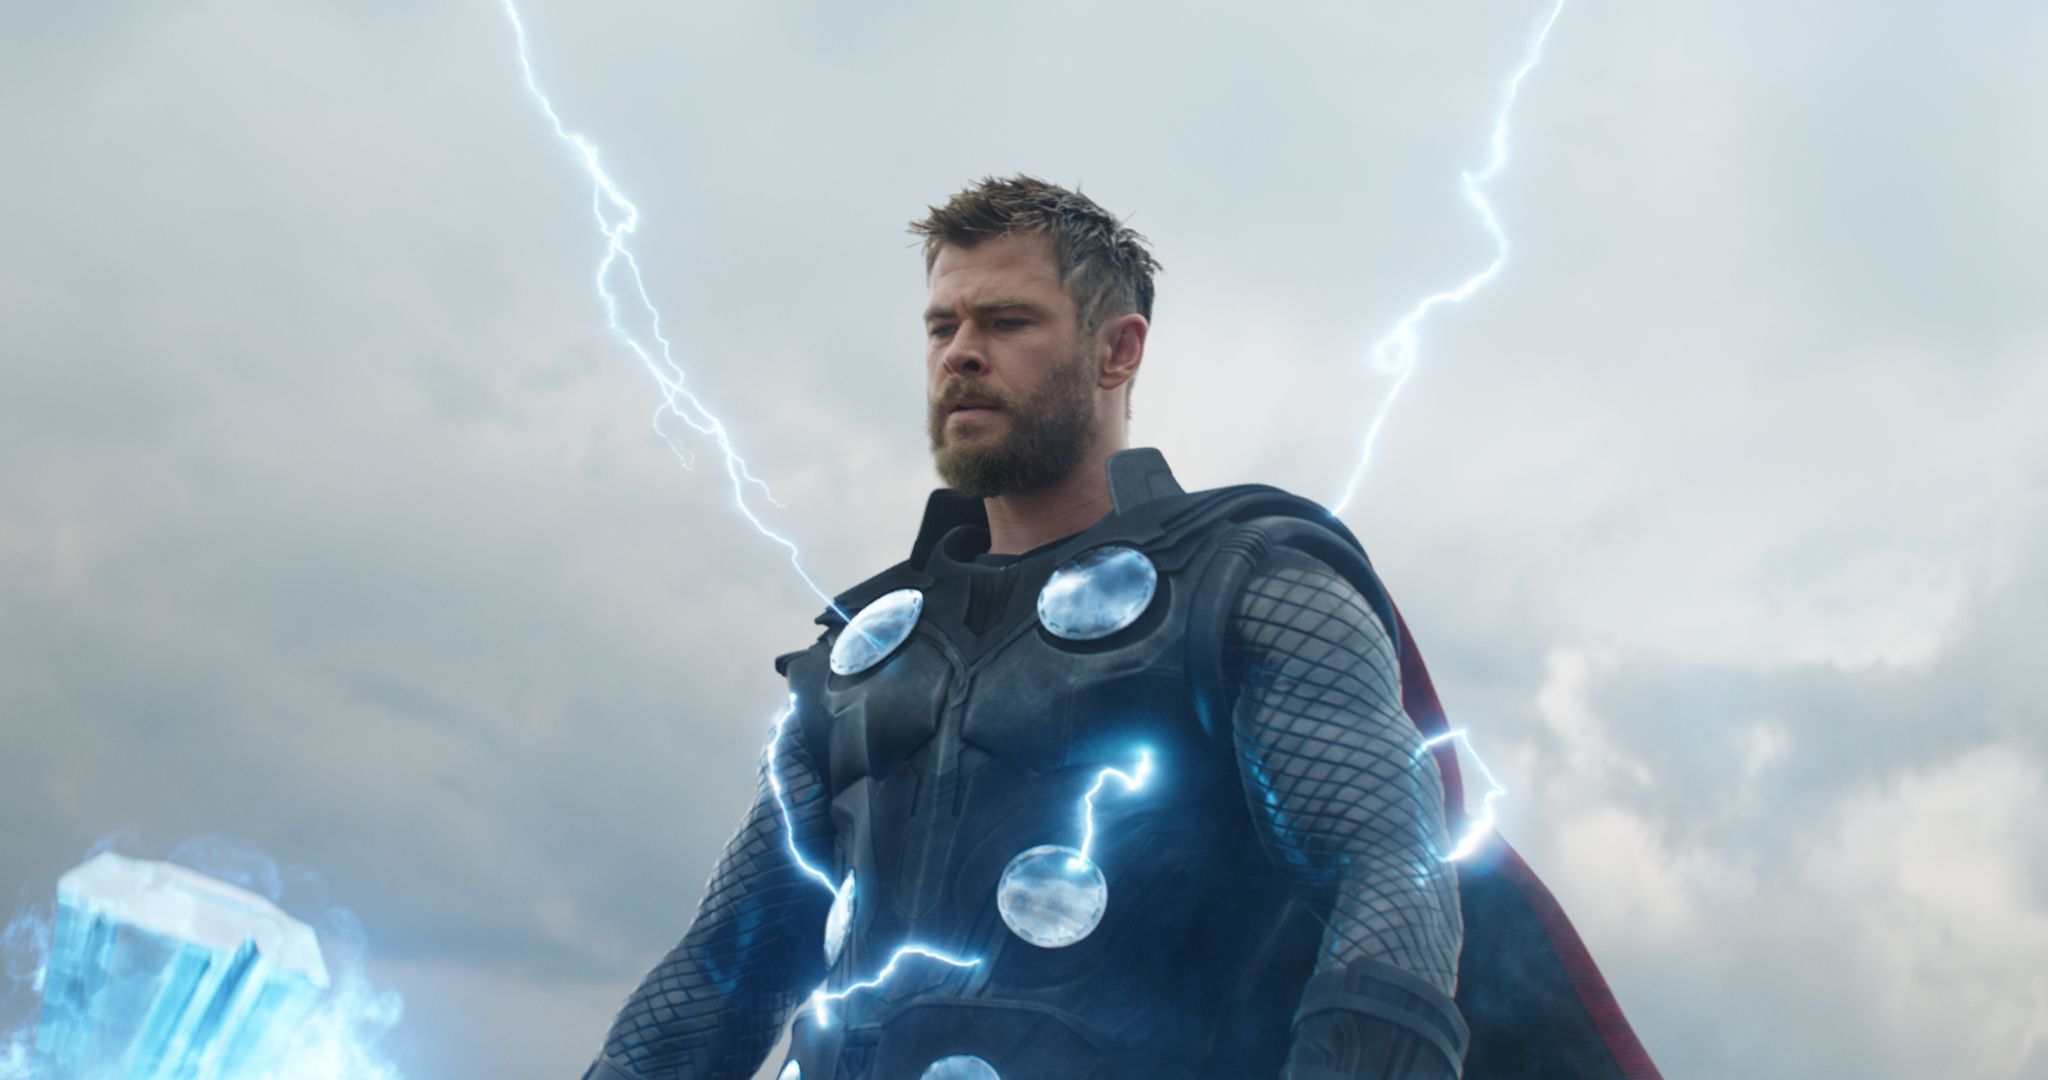 Thor gets back his mojo in Avengers: Endgame.